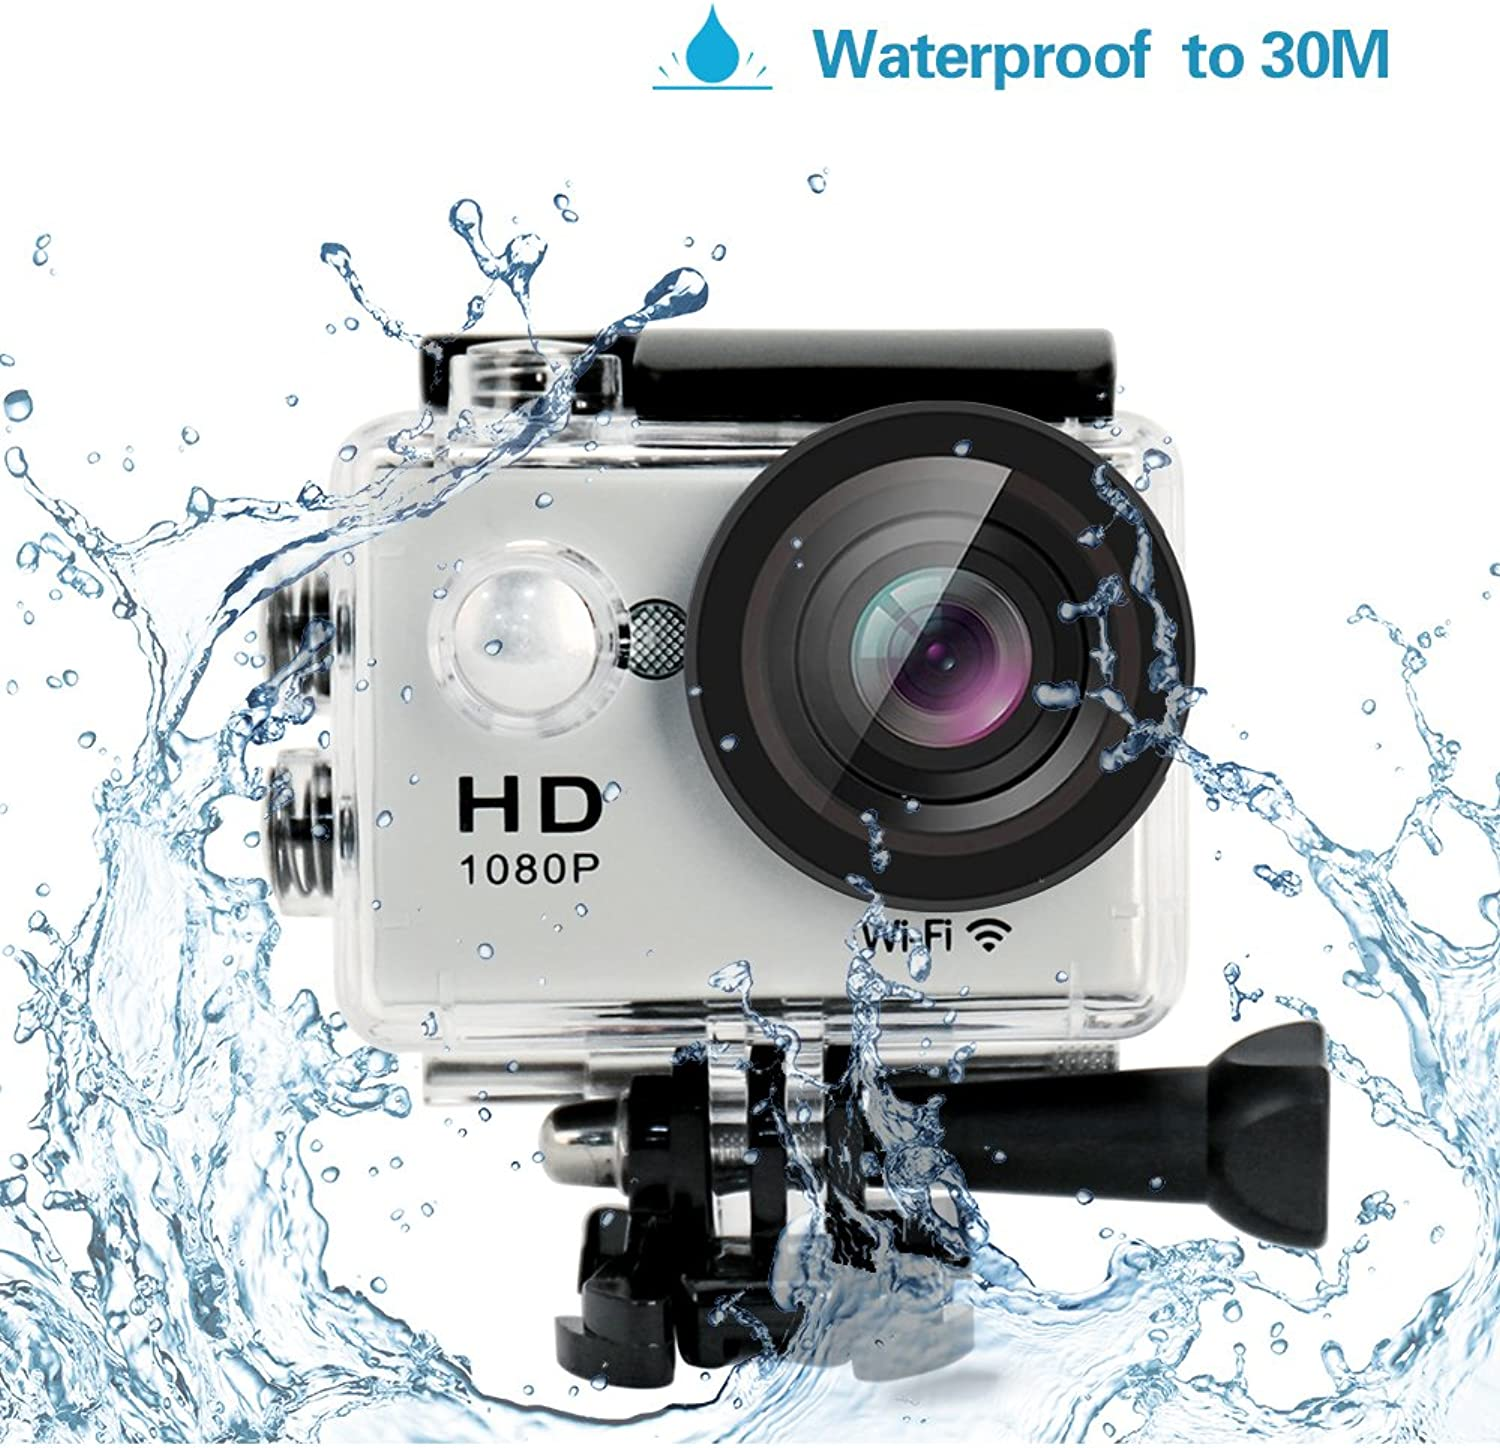 Yuntab W9 HD 1080P 30fps 12 Mega Pixels H.264 Sport Mini DV Action Camera 2.0  LCD 170° Wide Angle Lens 30M Waterproof WiFi Remote Control Outdoor Sports Home Security DV CAR DVR Camera FPV supported,AV output supported(Silver)